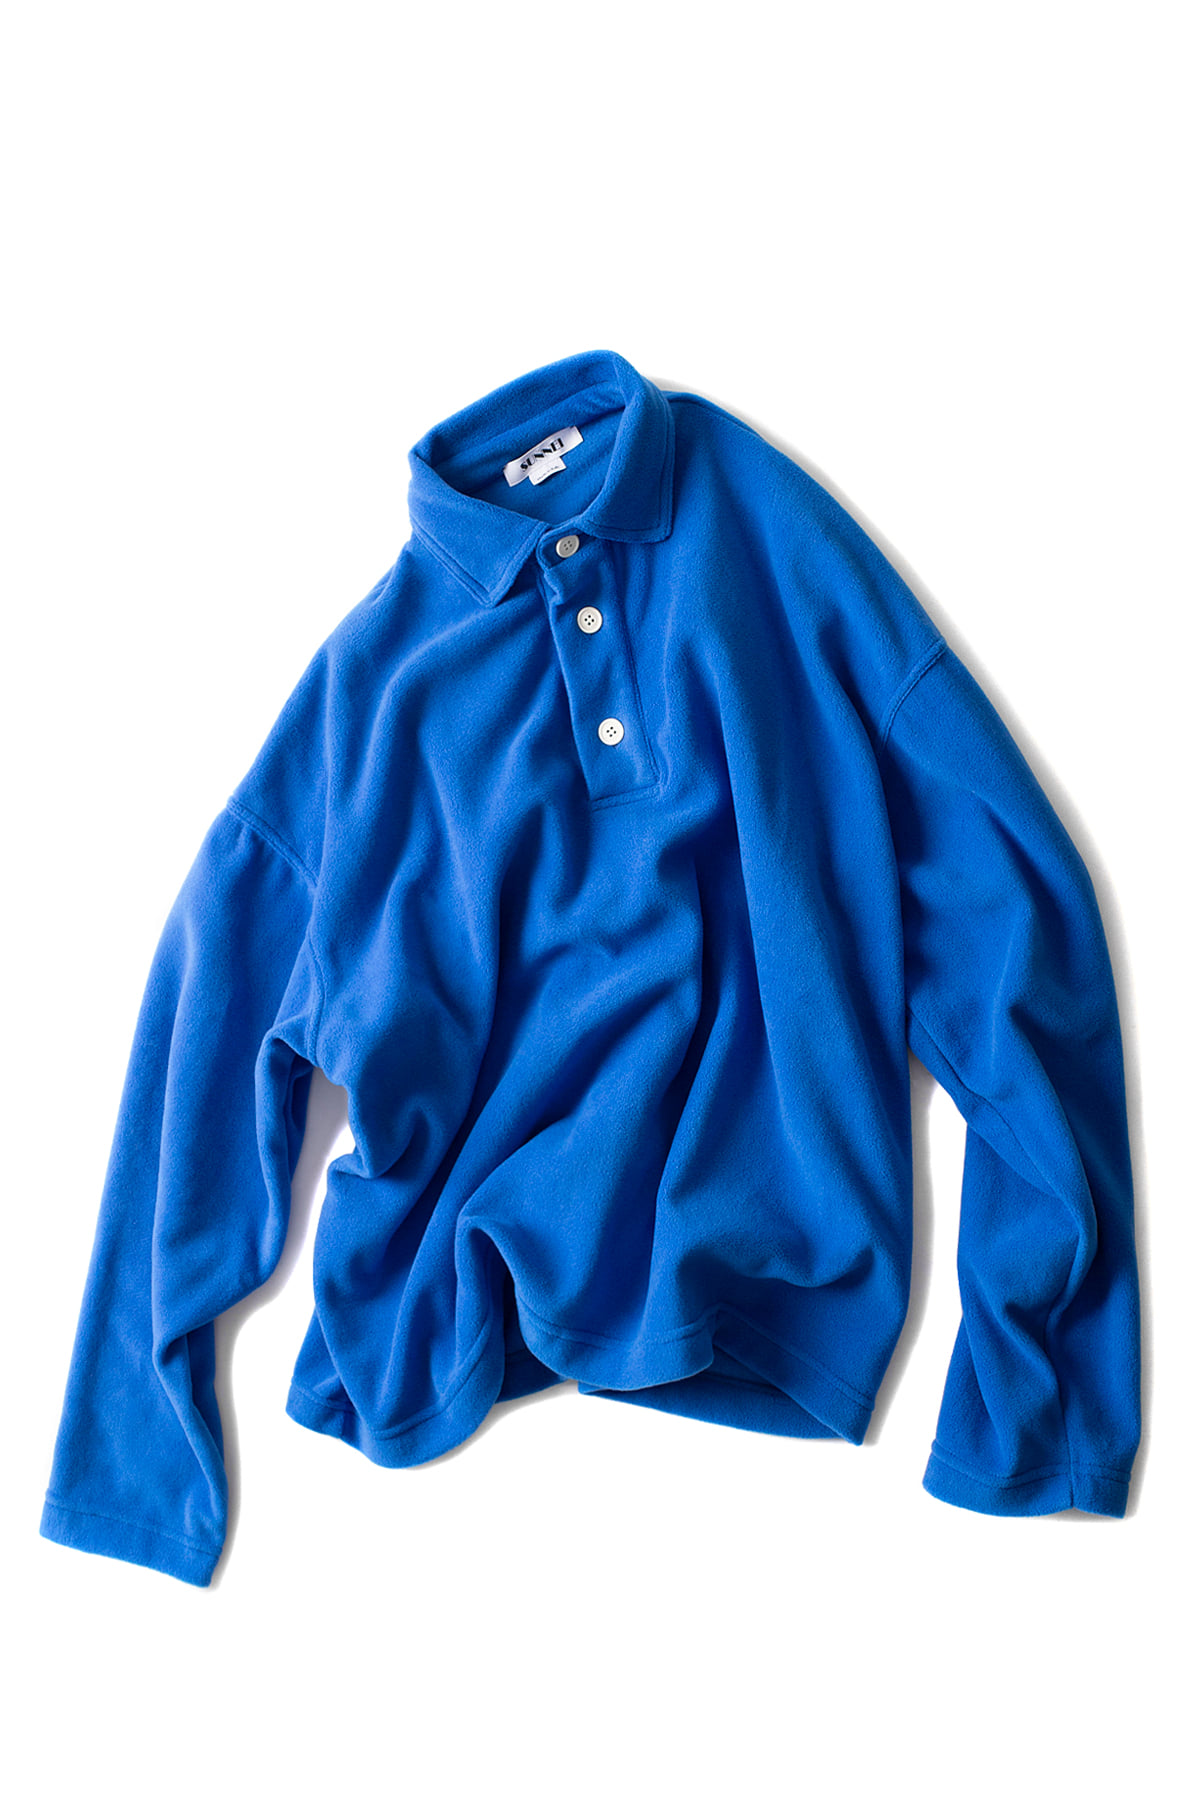 SUNNEI : Polo Shirt (Blue)